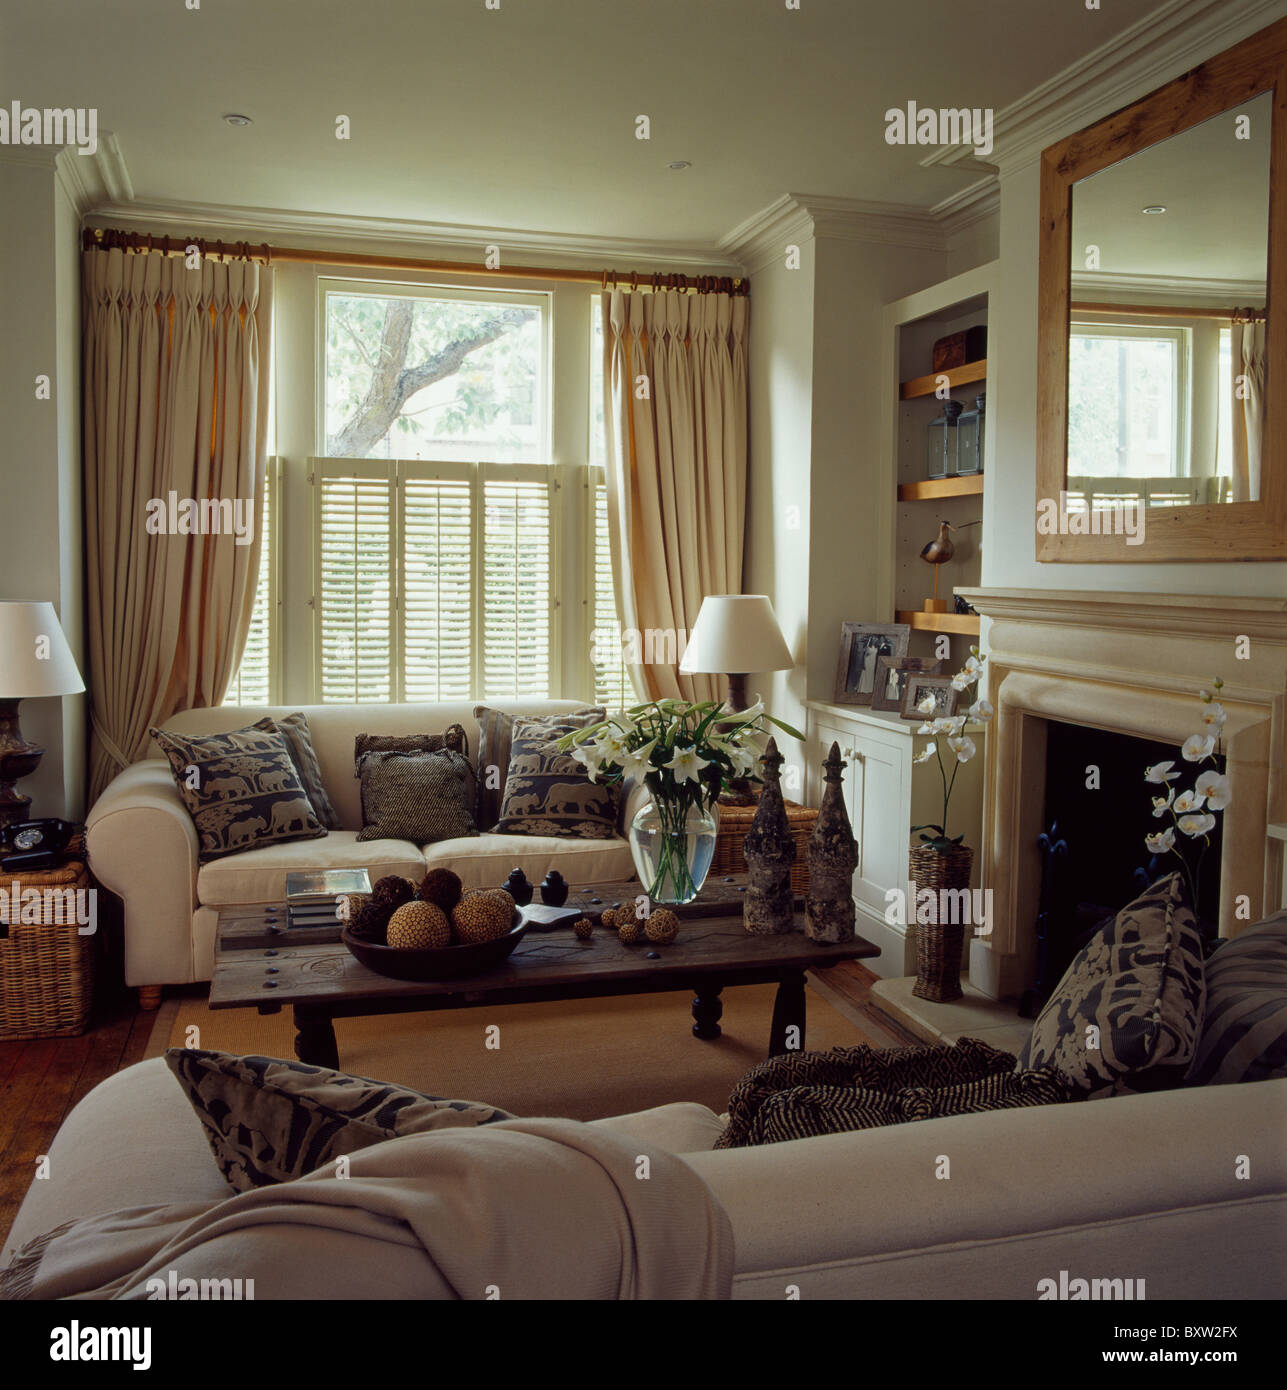 Living Rooms Cream Sofas In Stock Photos & Living Rooms